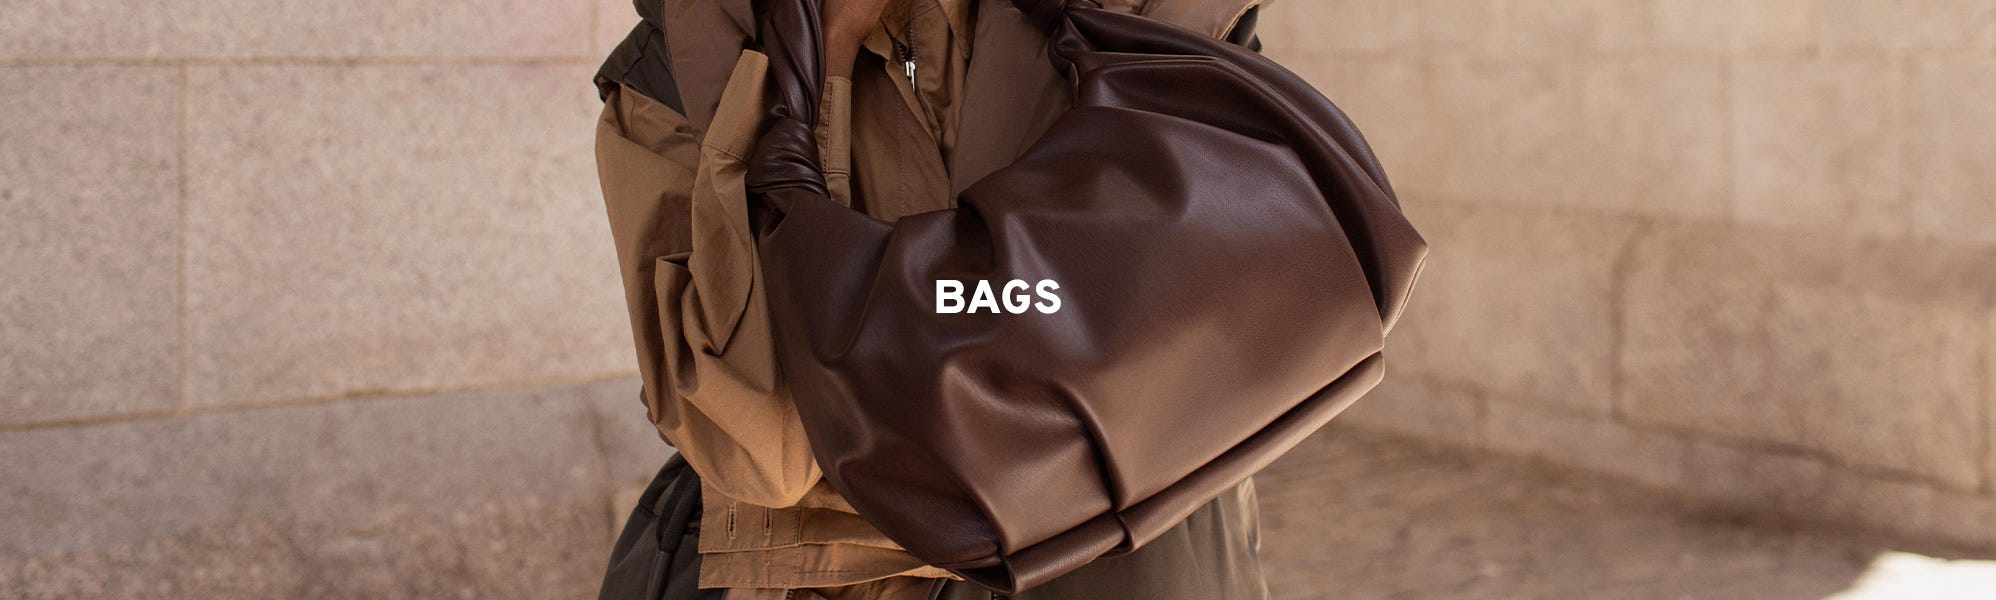 Cheap bags on offer